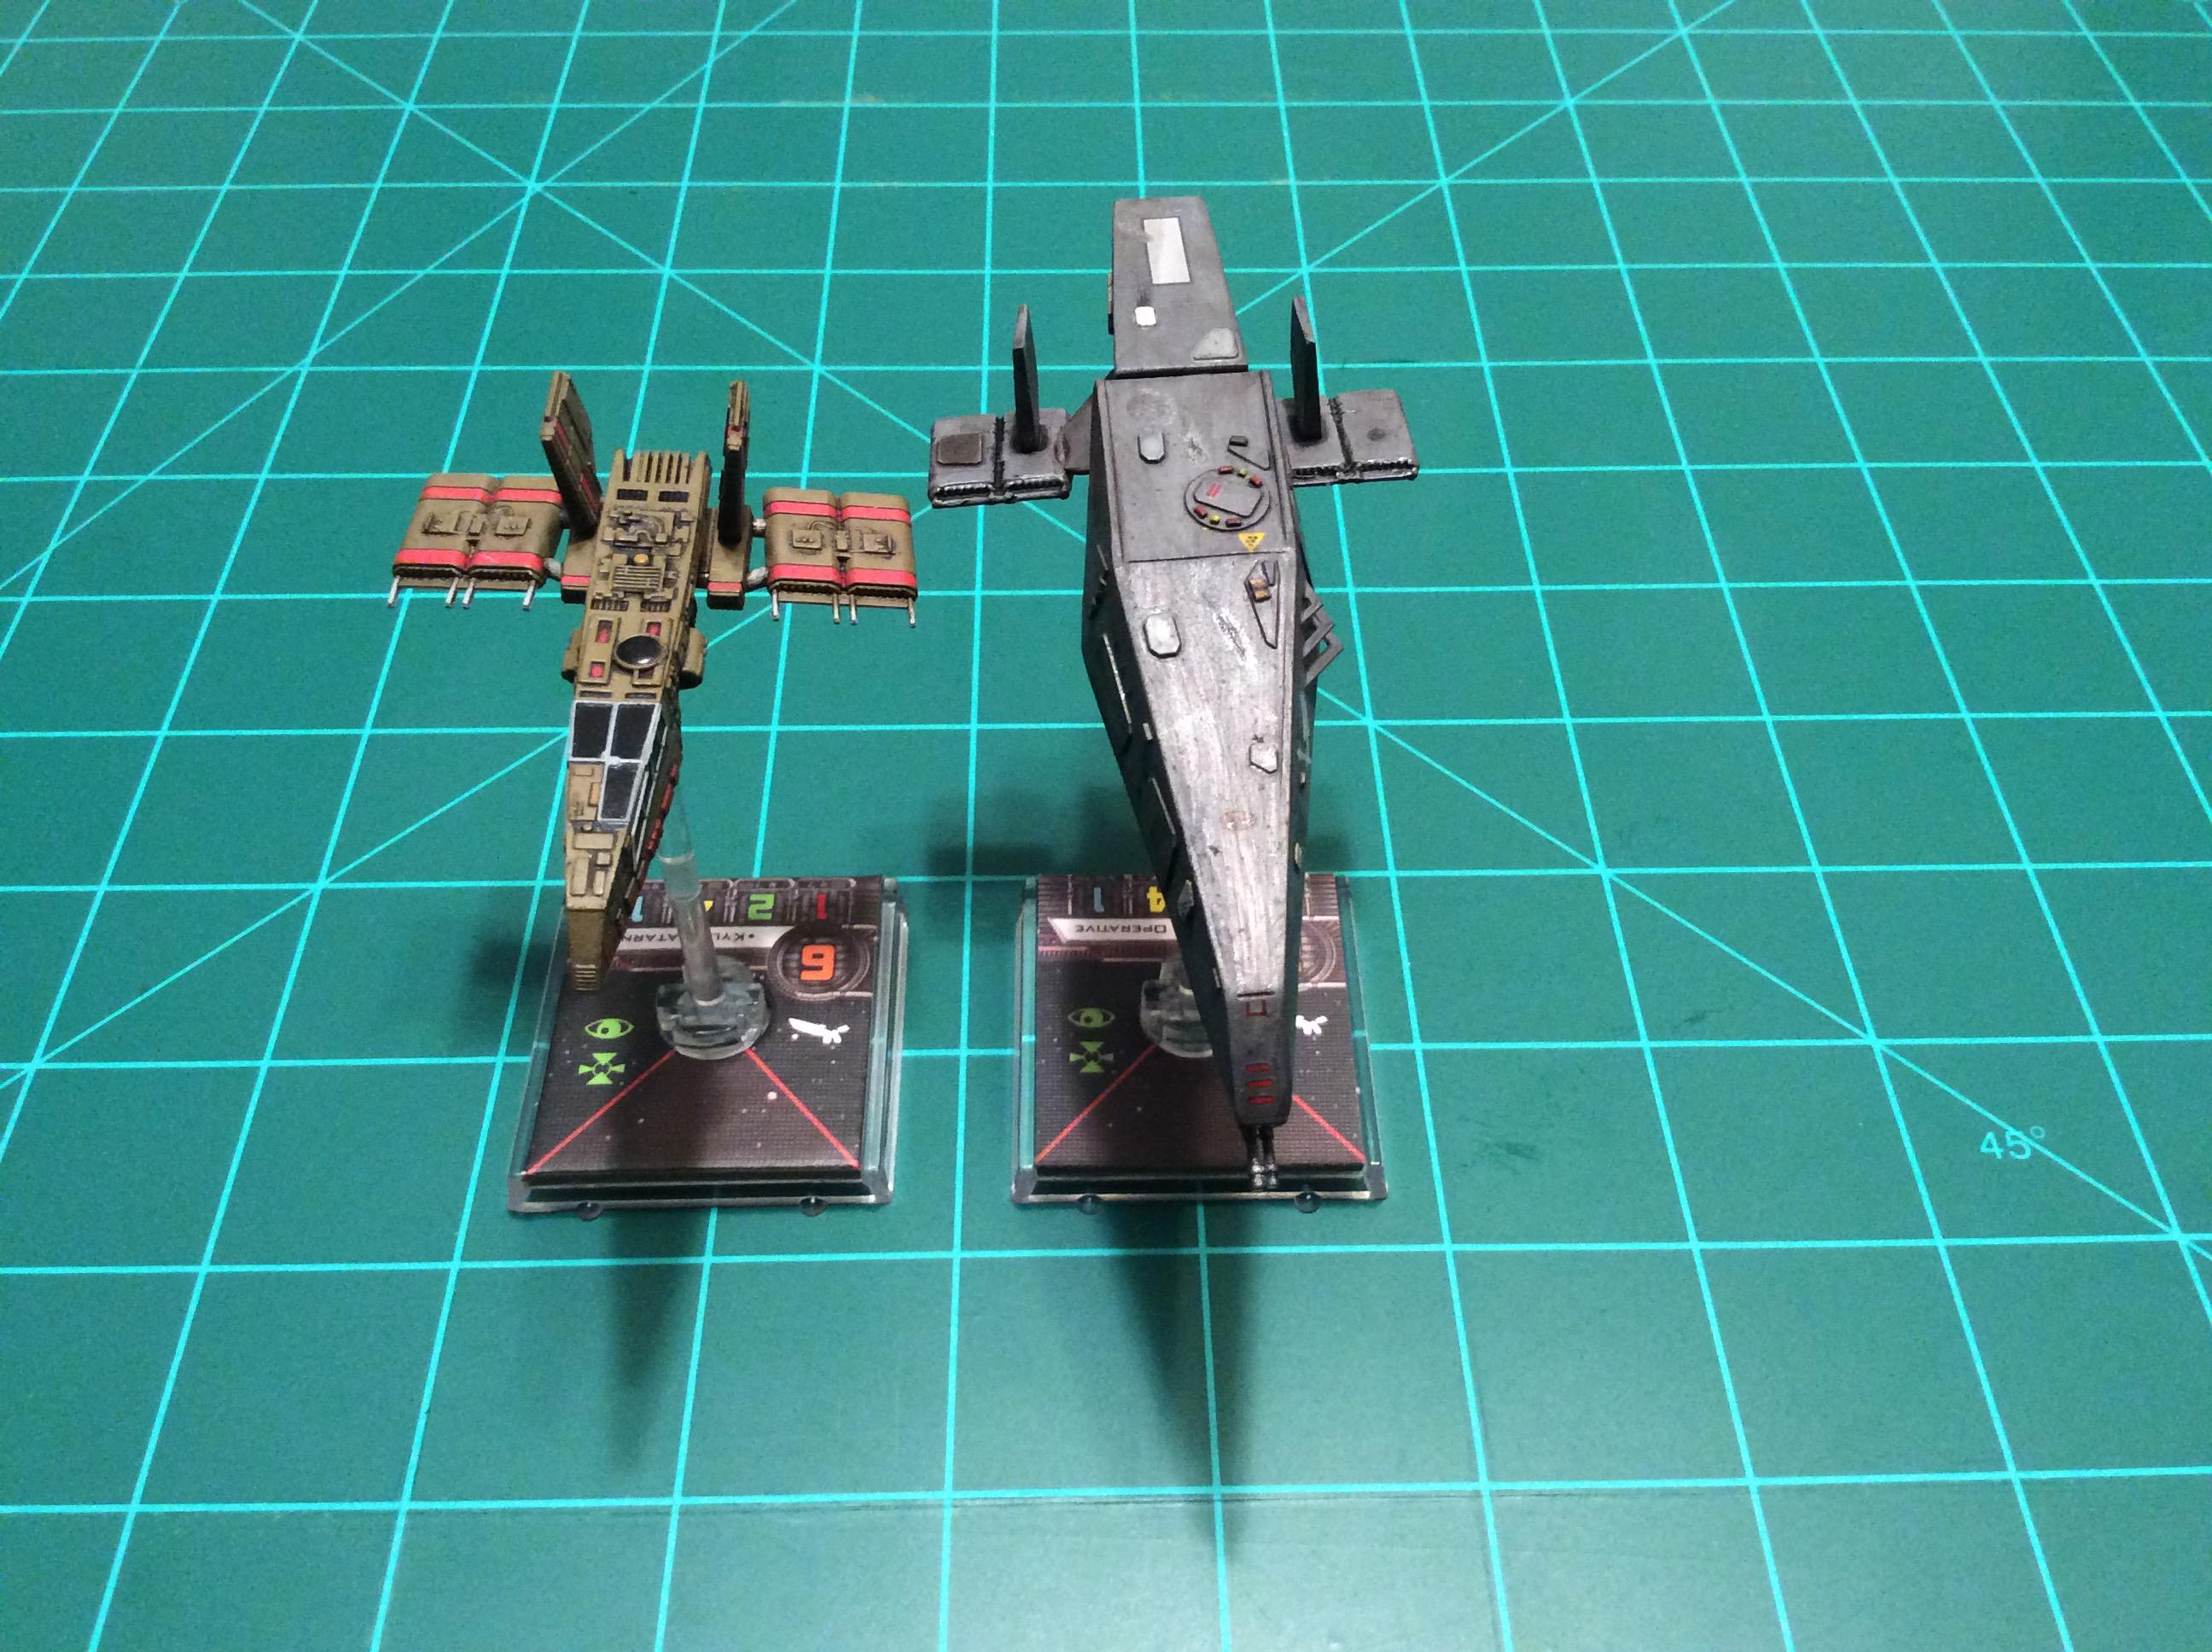 1/270 Scale, Hwk-290, Star Wars, X-wing Miniatures Game